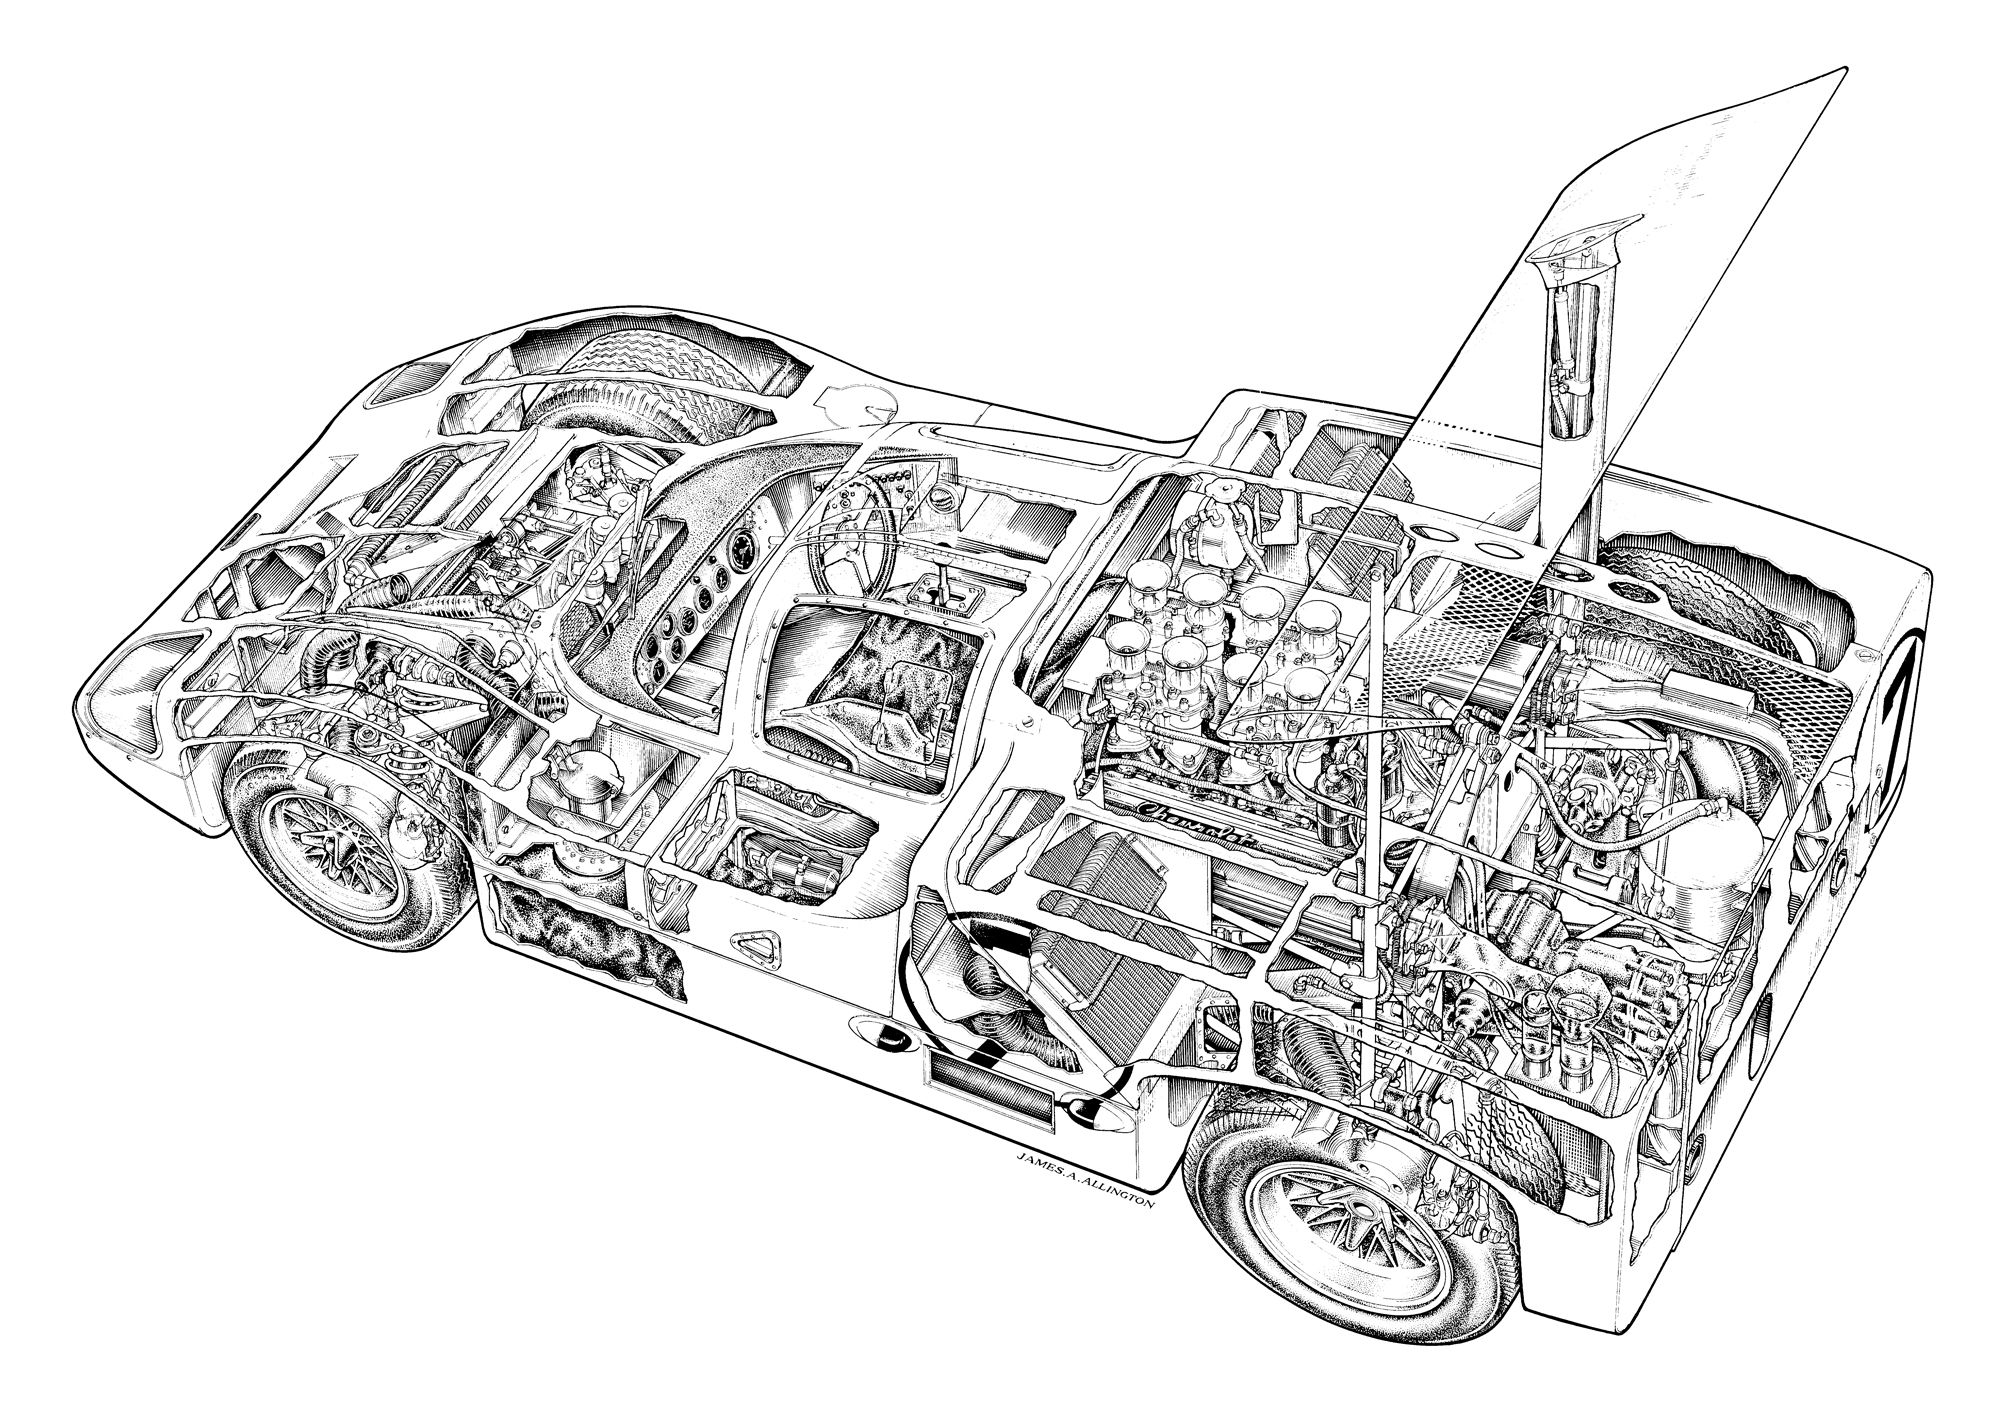 Chaparral Cutaway By James A Allington